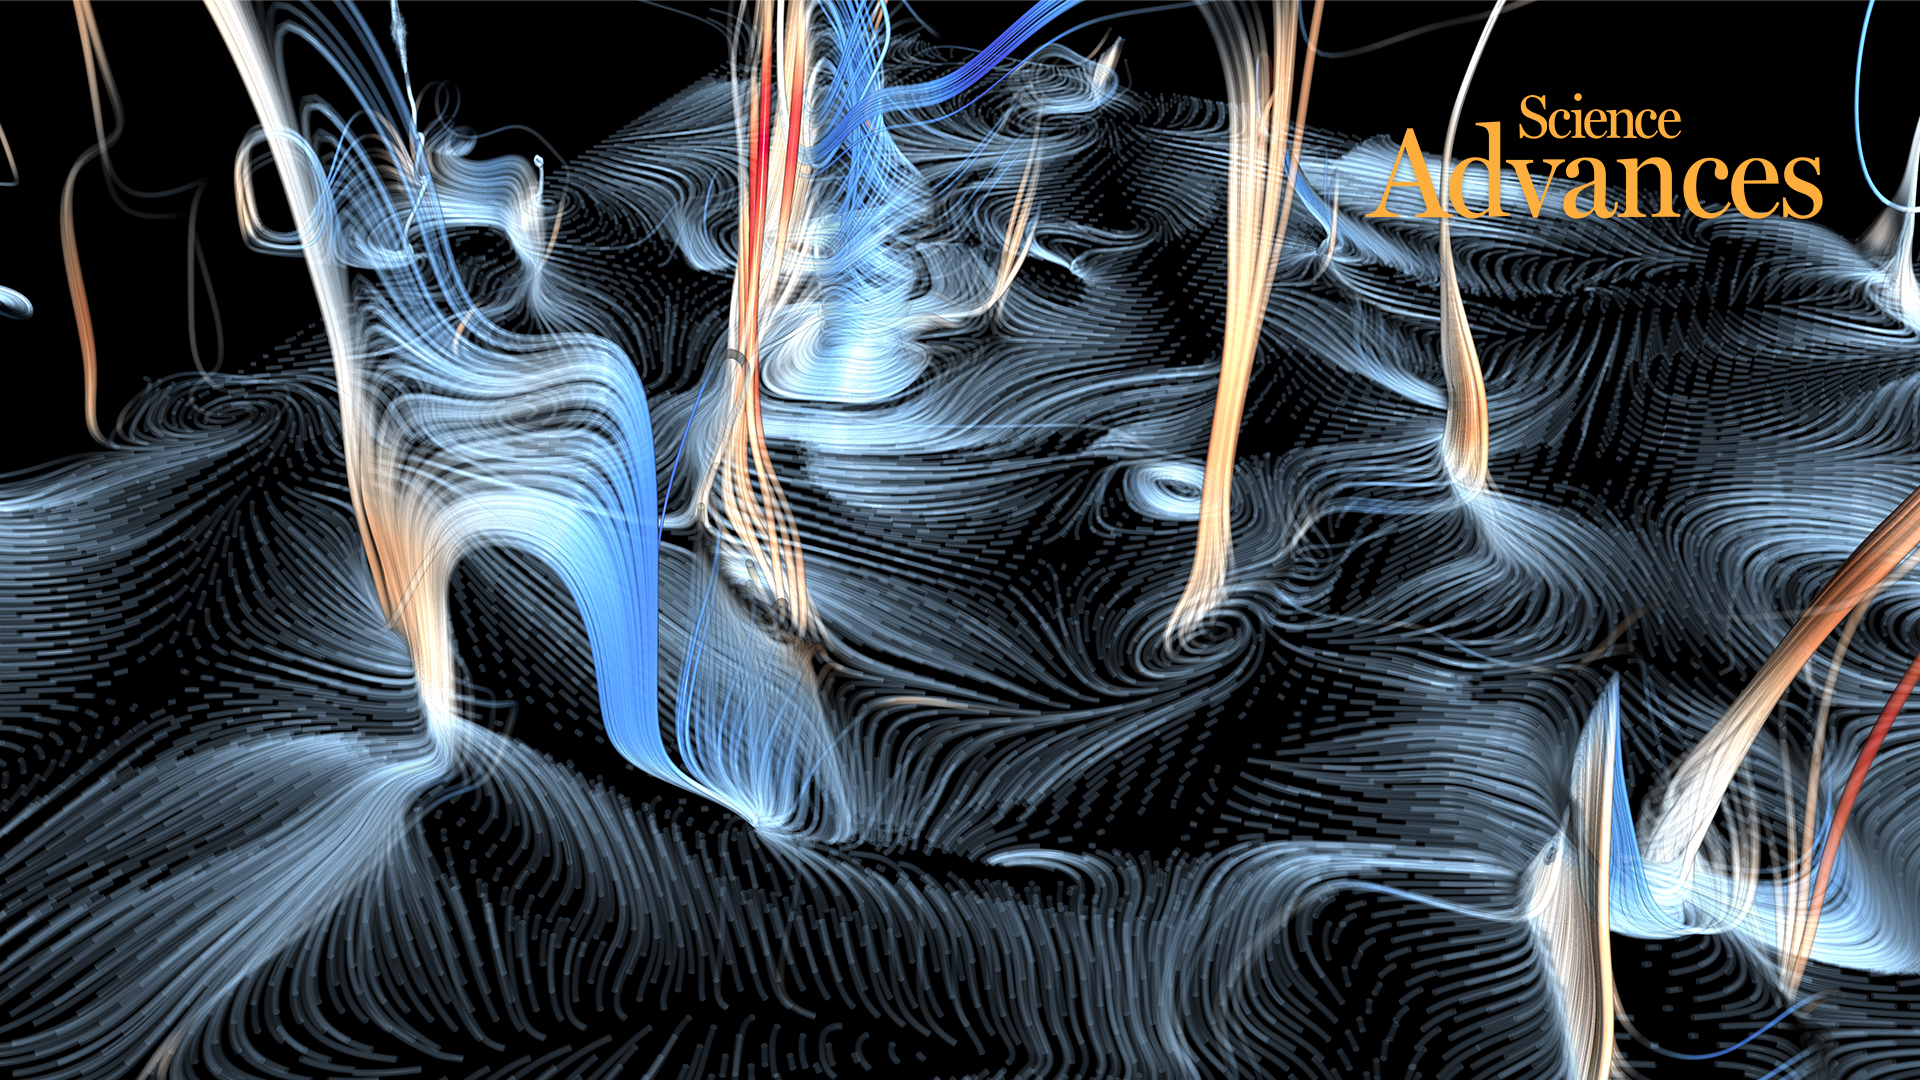 Pollen inspired rule behind motion of turbulent vortices